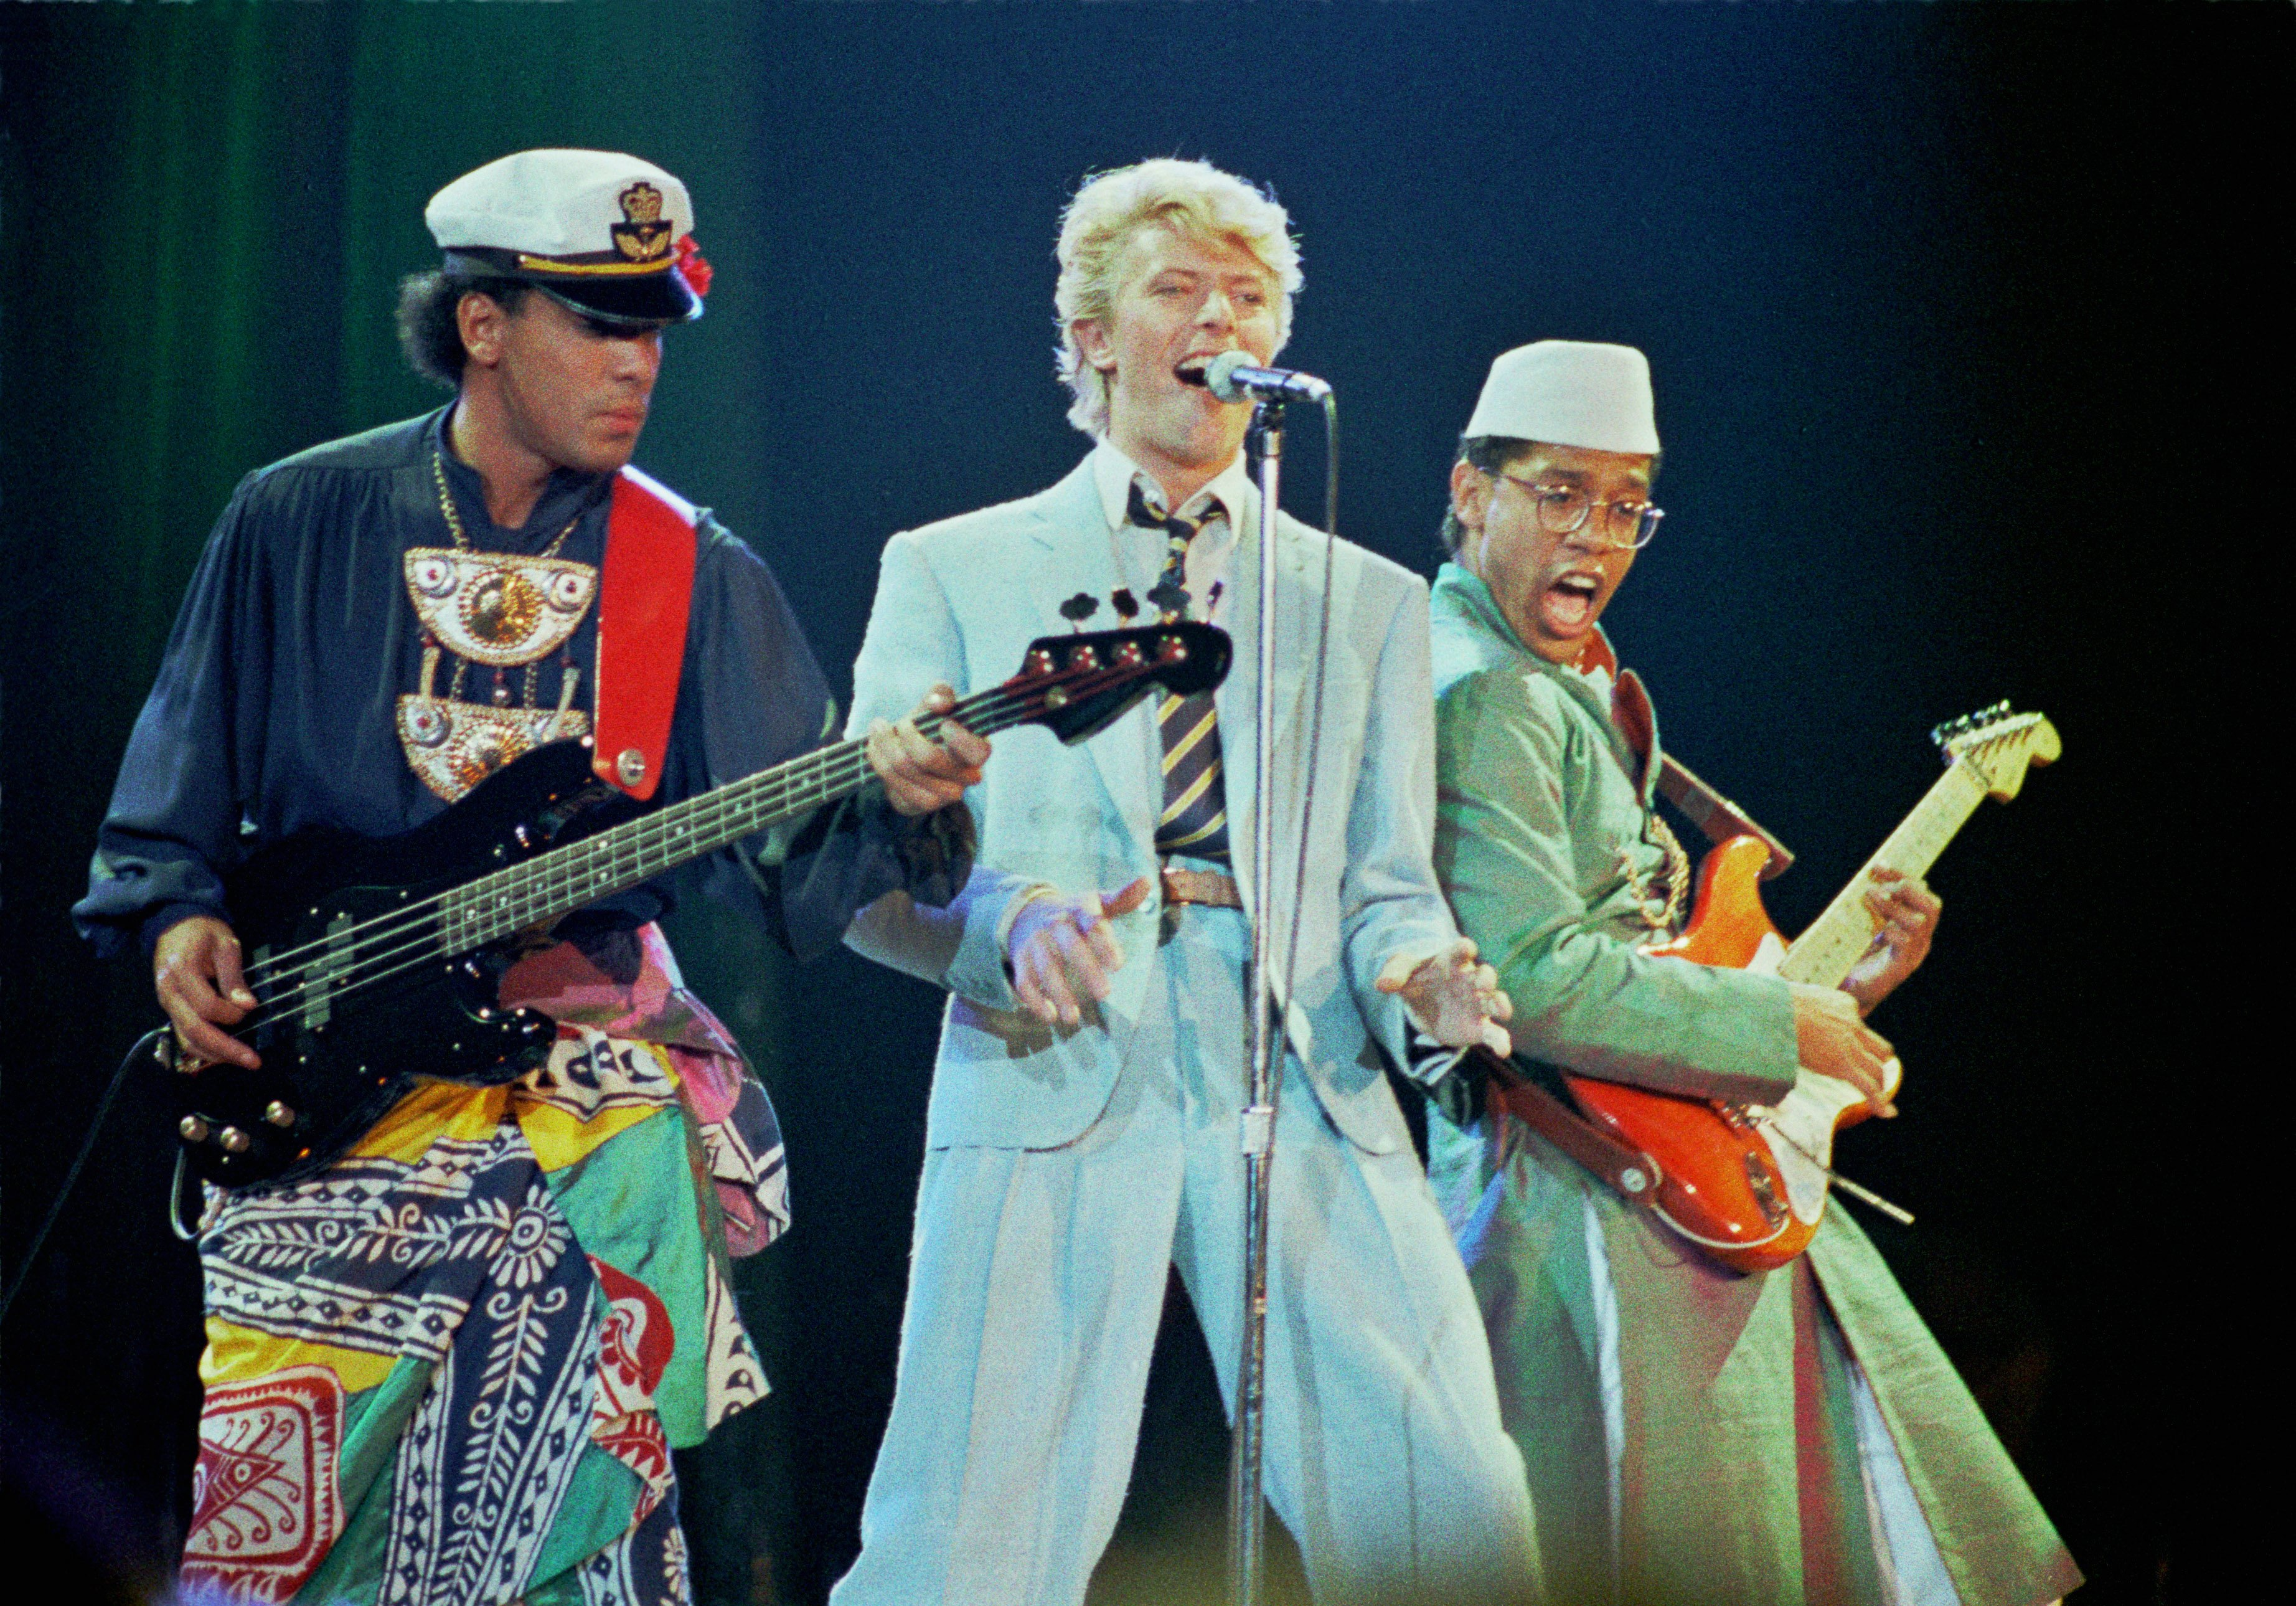 From left: Carmine Rojas, David Bowie, and Carlos Alomar perform during the Serious Moonlight tour in 1983 at Wembley Arena in London.